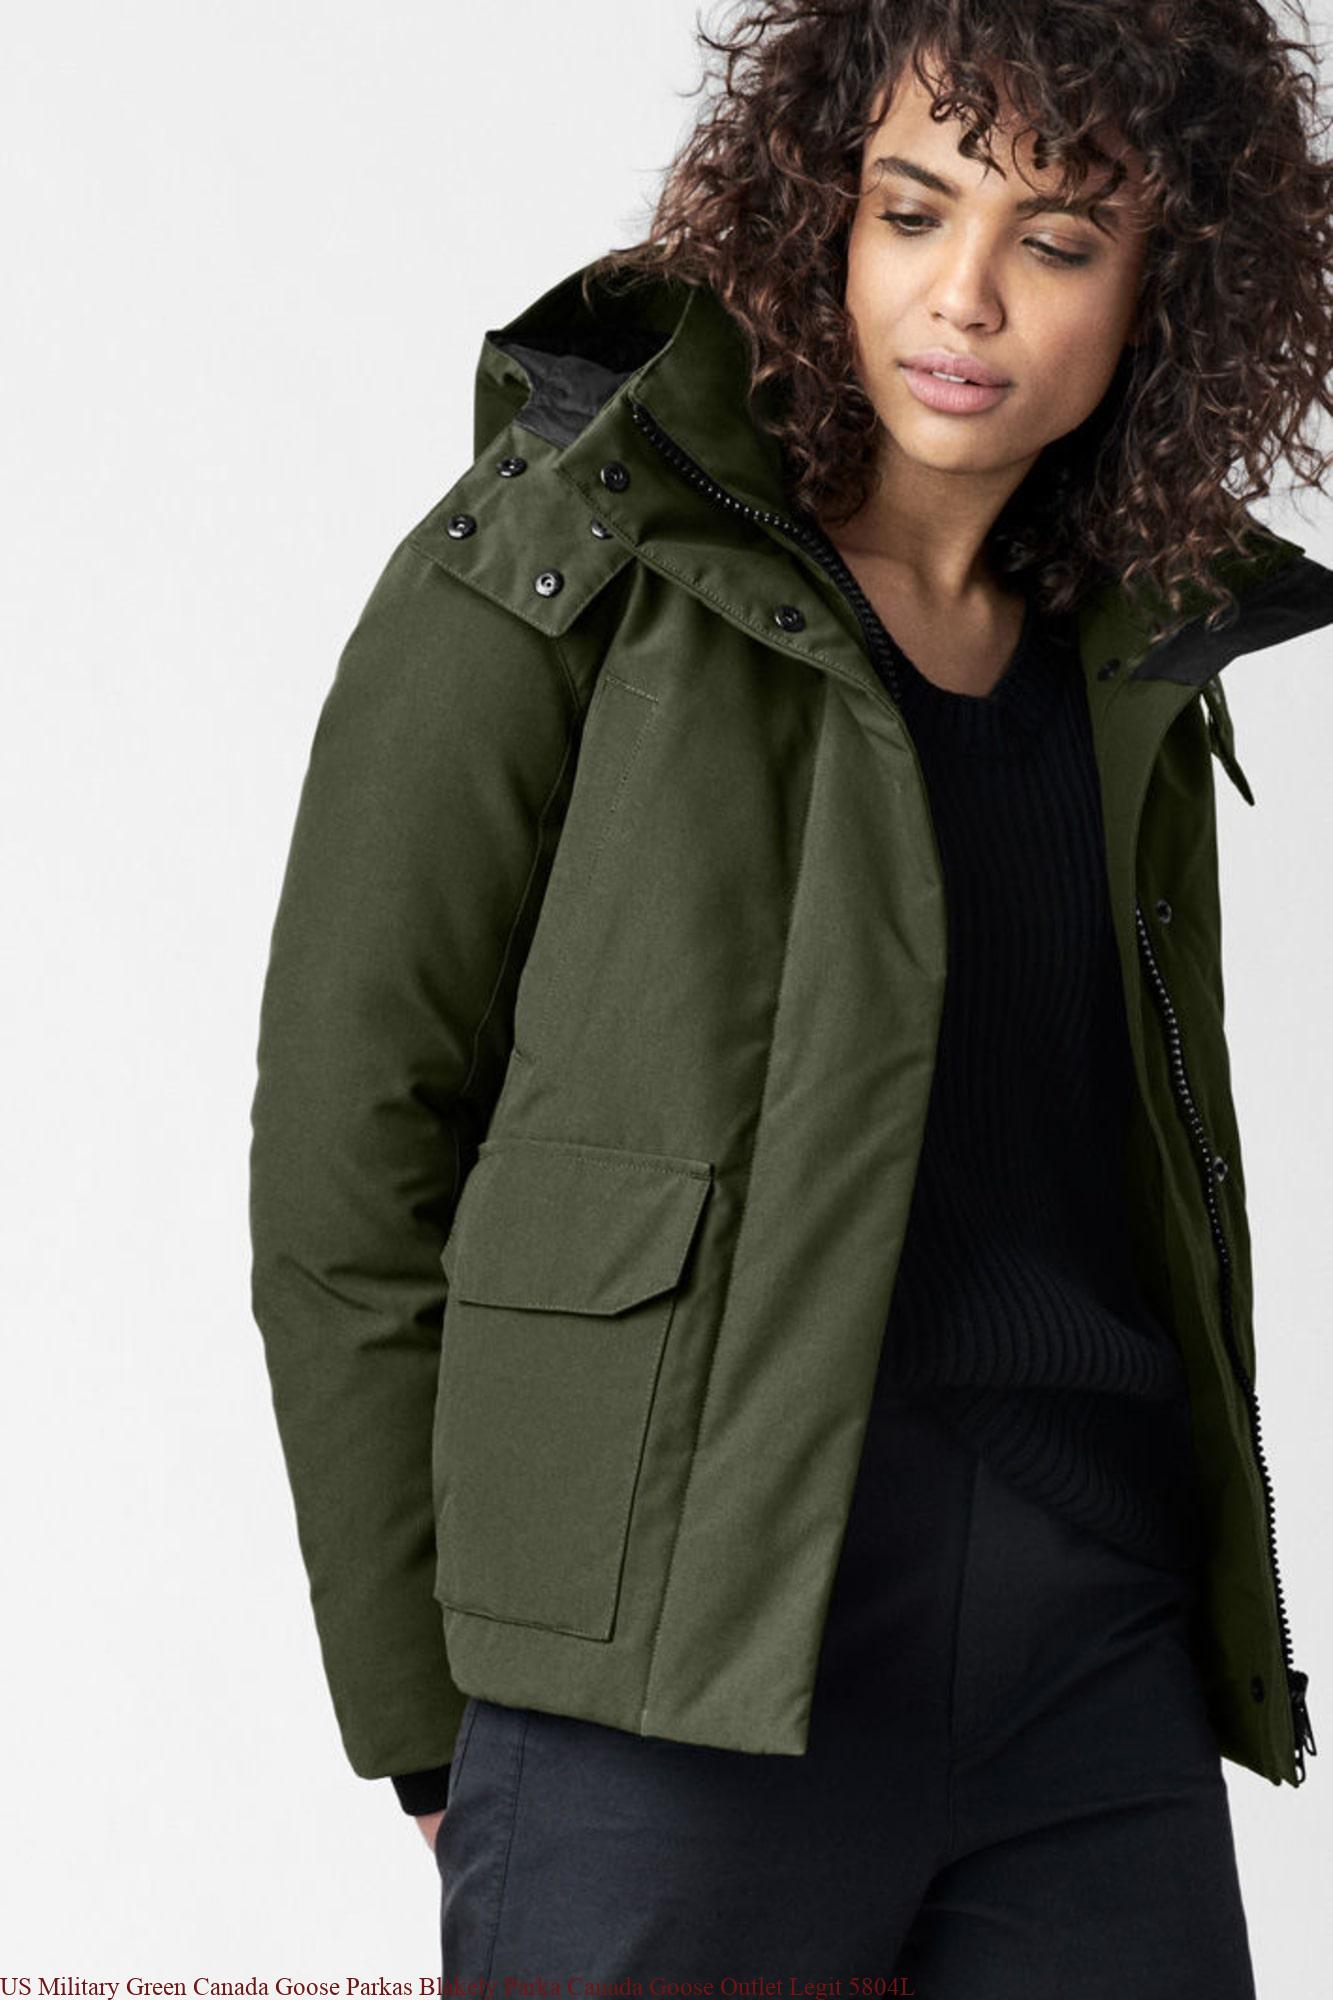 6a76400b55a7 US Military Green Canada Goose Parkas Blakely Parka Canada Goose Outlet  Legit 5804L